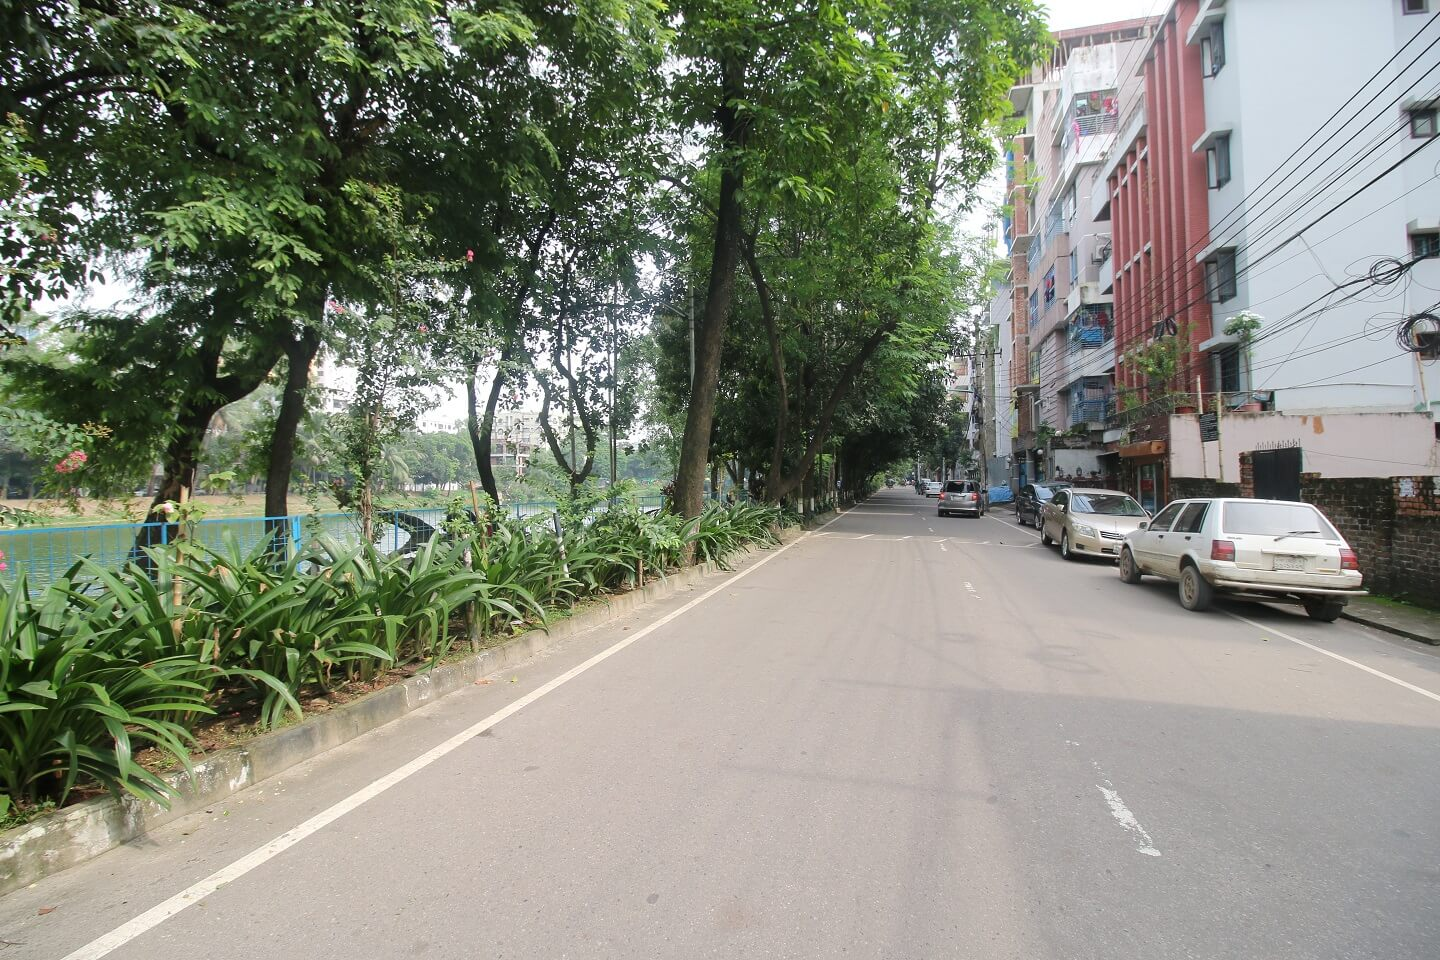 The first among the trending residential areas in Dhaka - Uttara